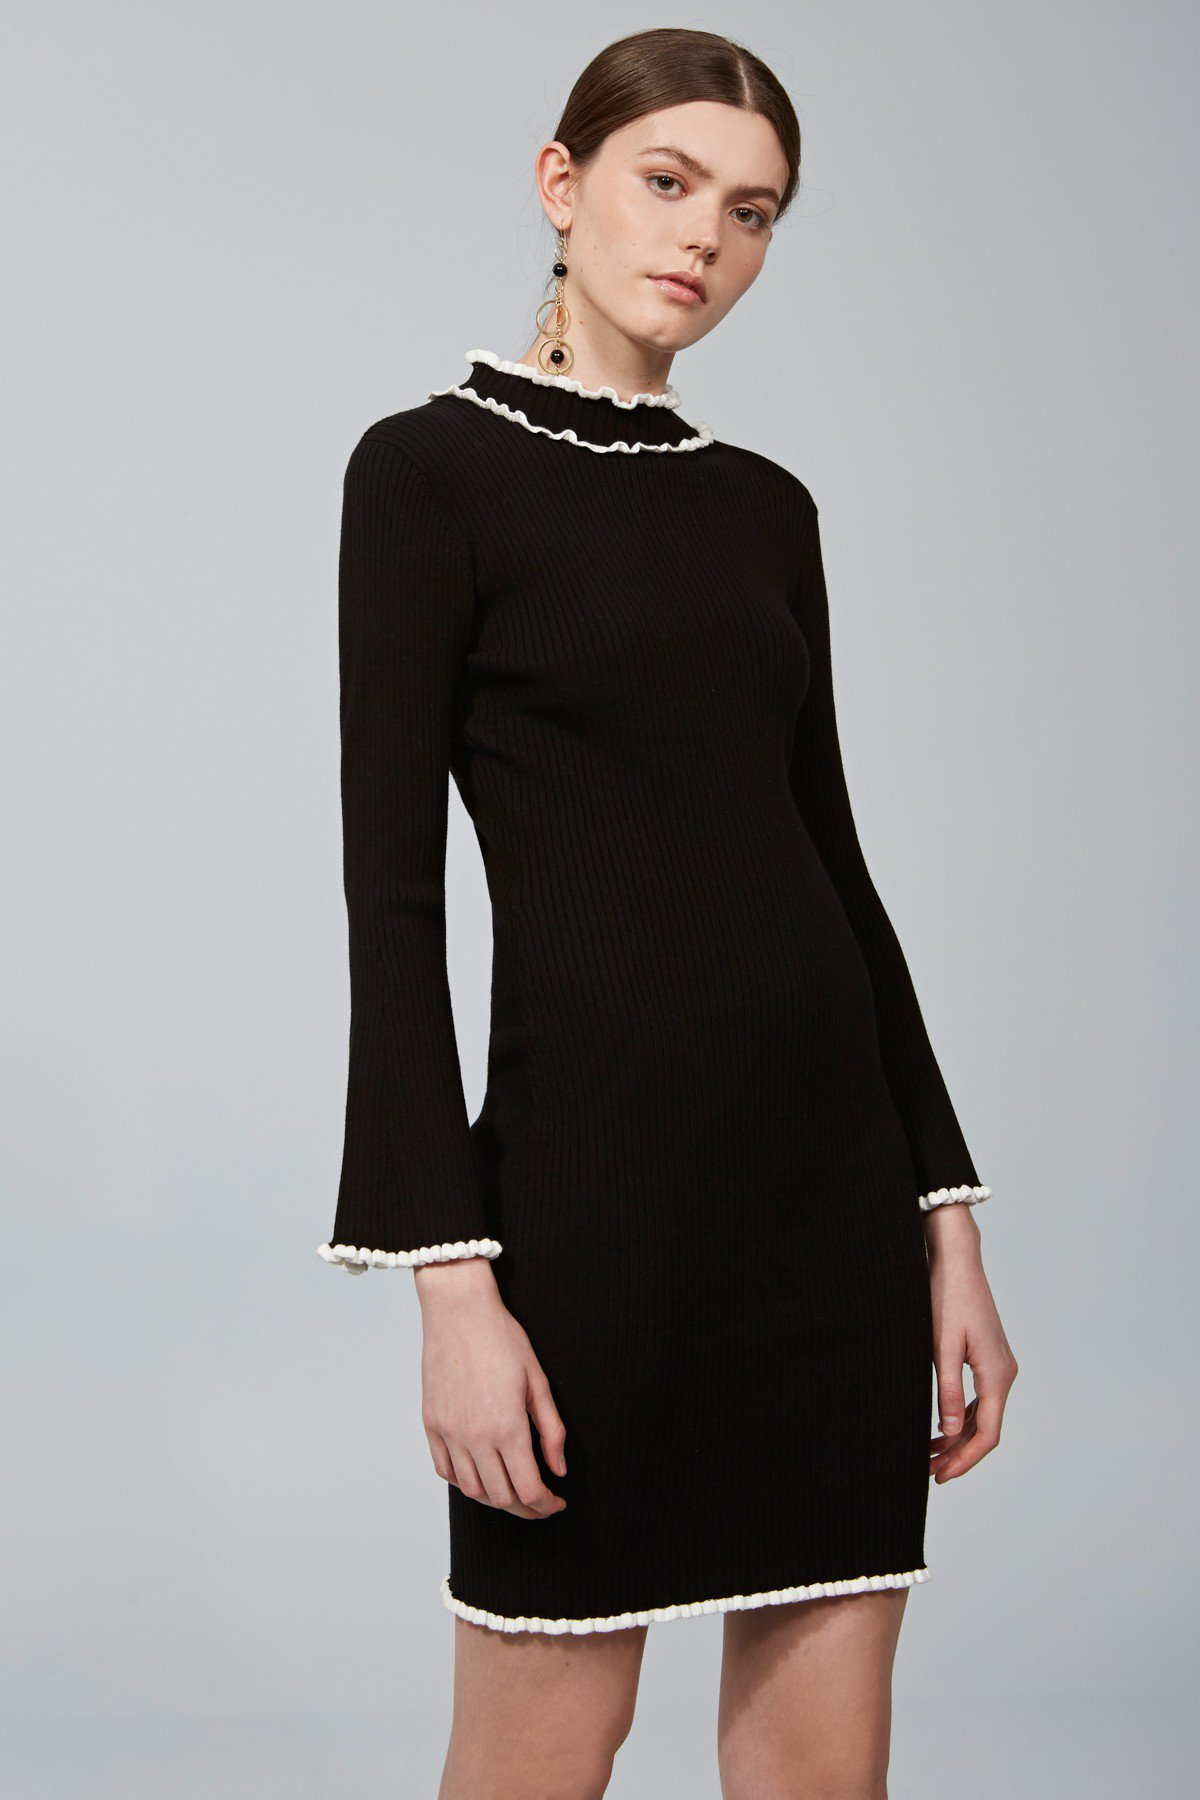 Shop Keepsake A Knit By Any Other Name Dress.